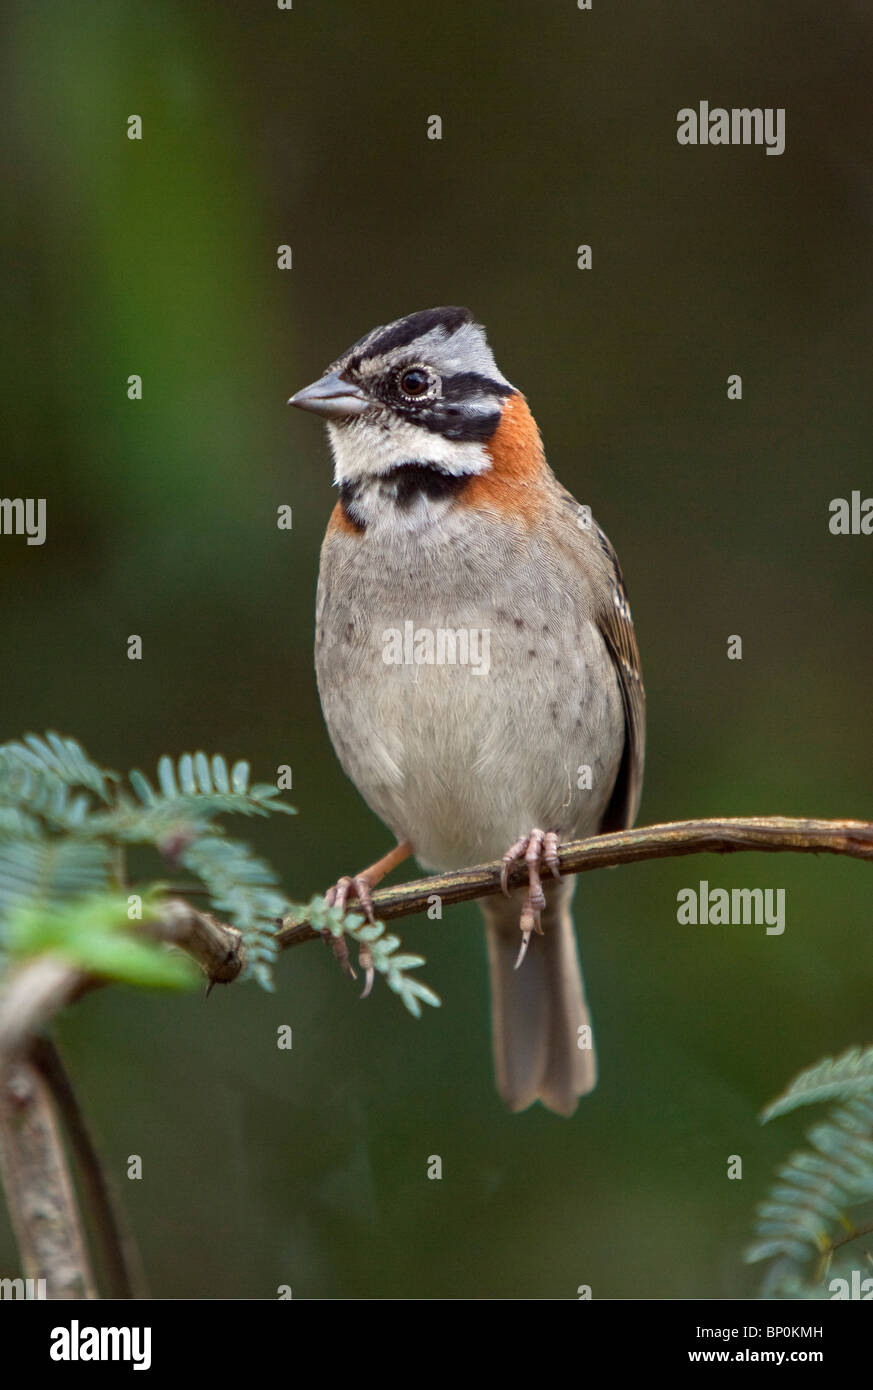 Peru, A rufous-collared sparrow. These birds are commonly seen around the world-famous Inca ruins at Machu Picchu. Stock Photo